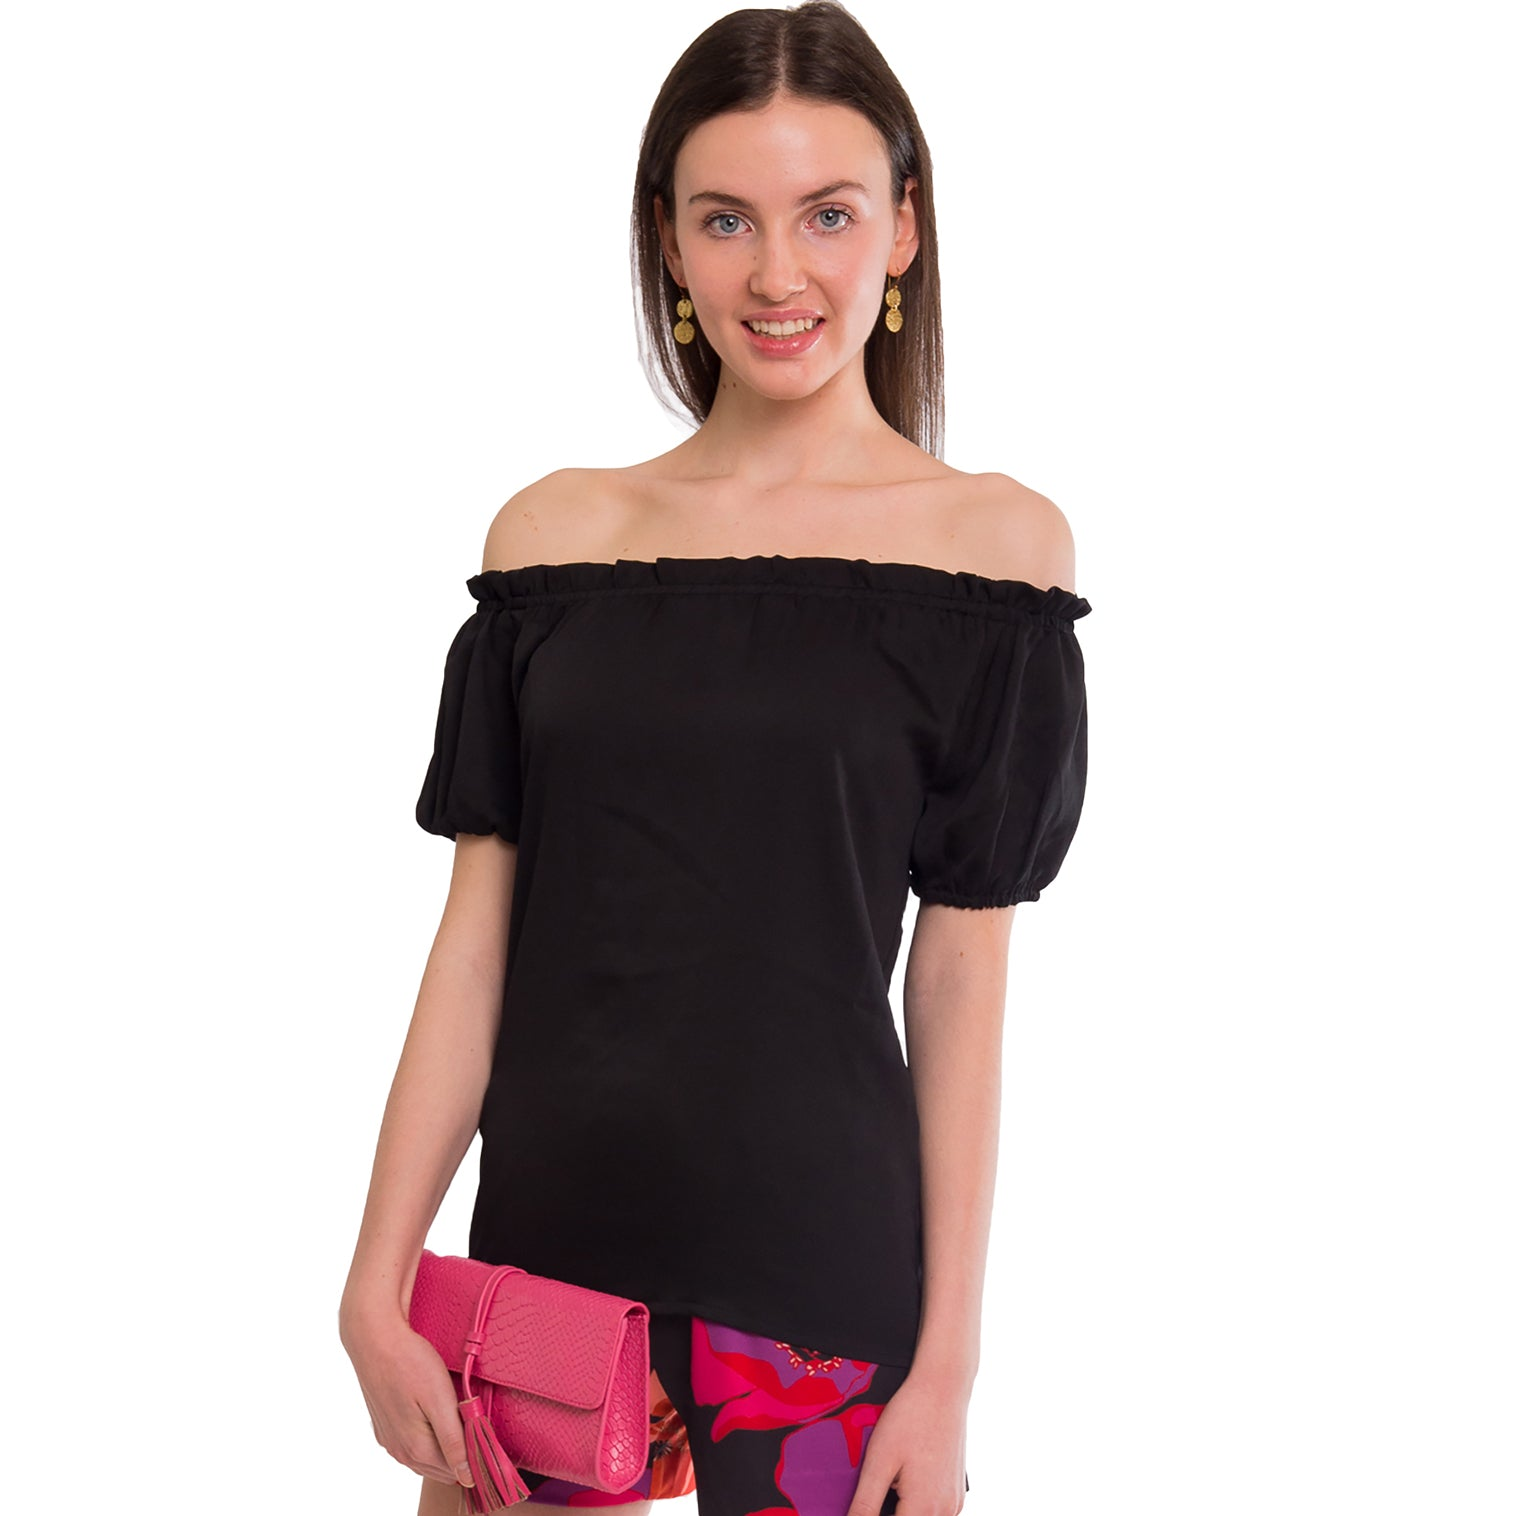 Sadie  Blouse in Black - Elizabeth Ackerman New York